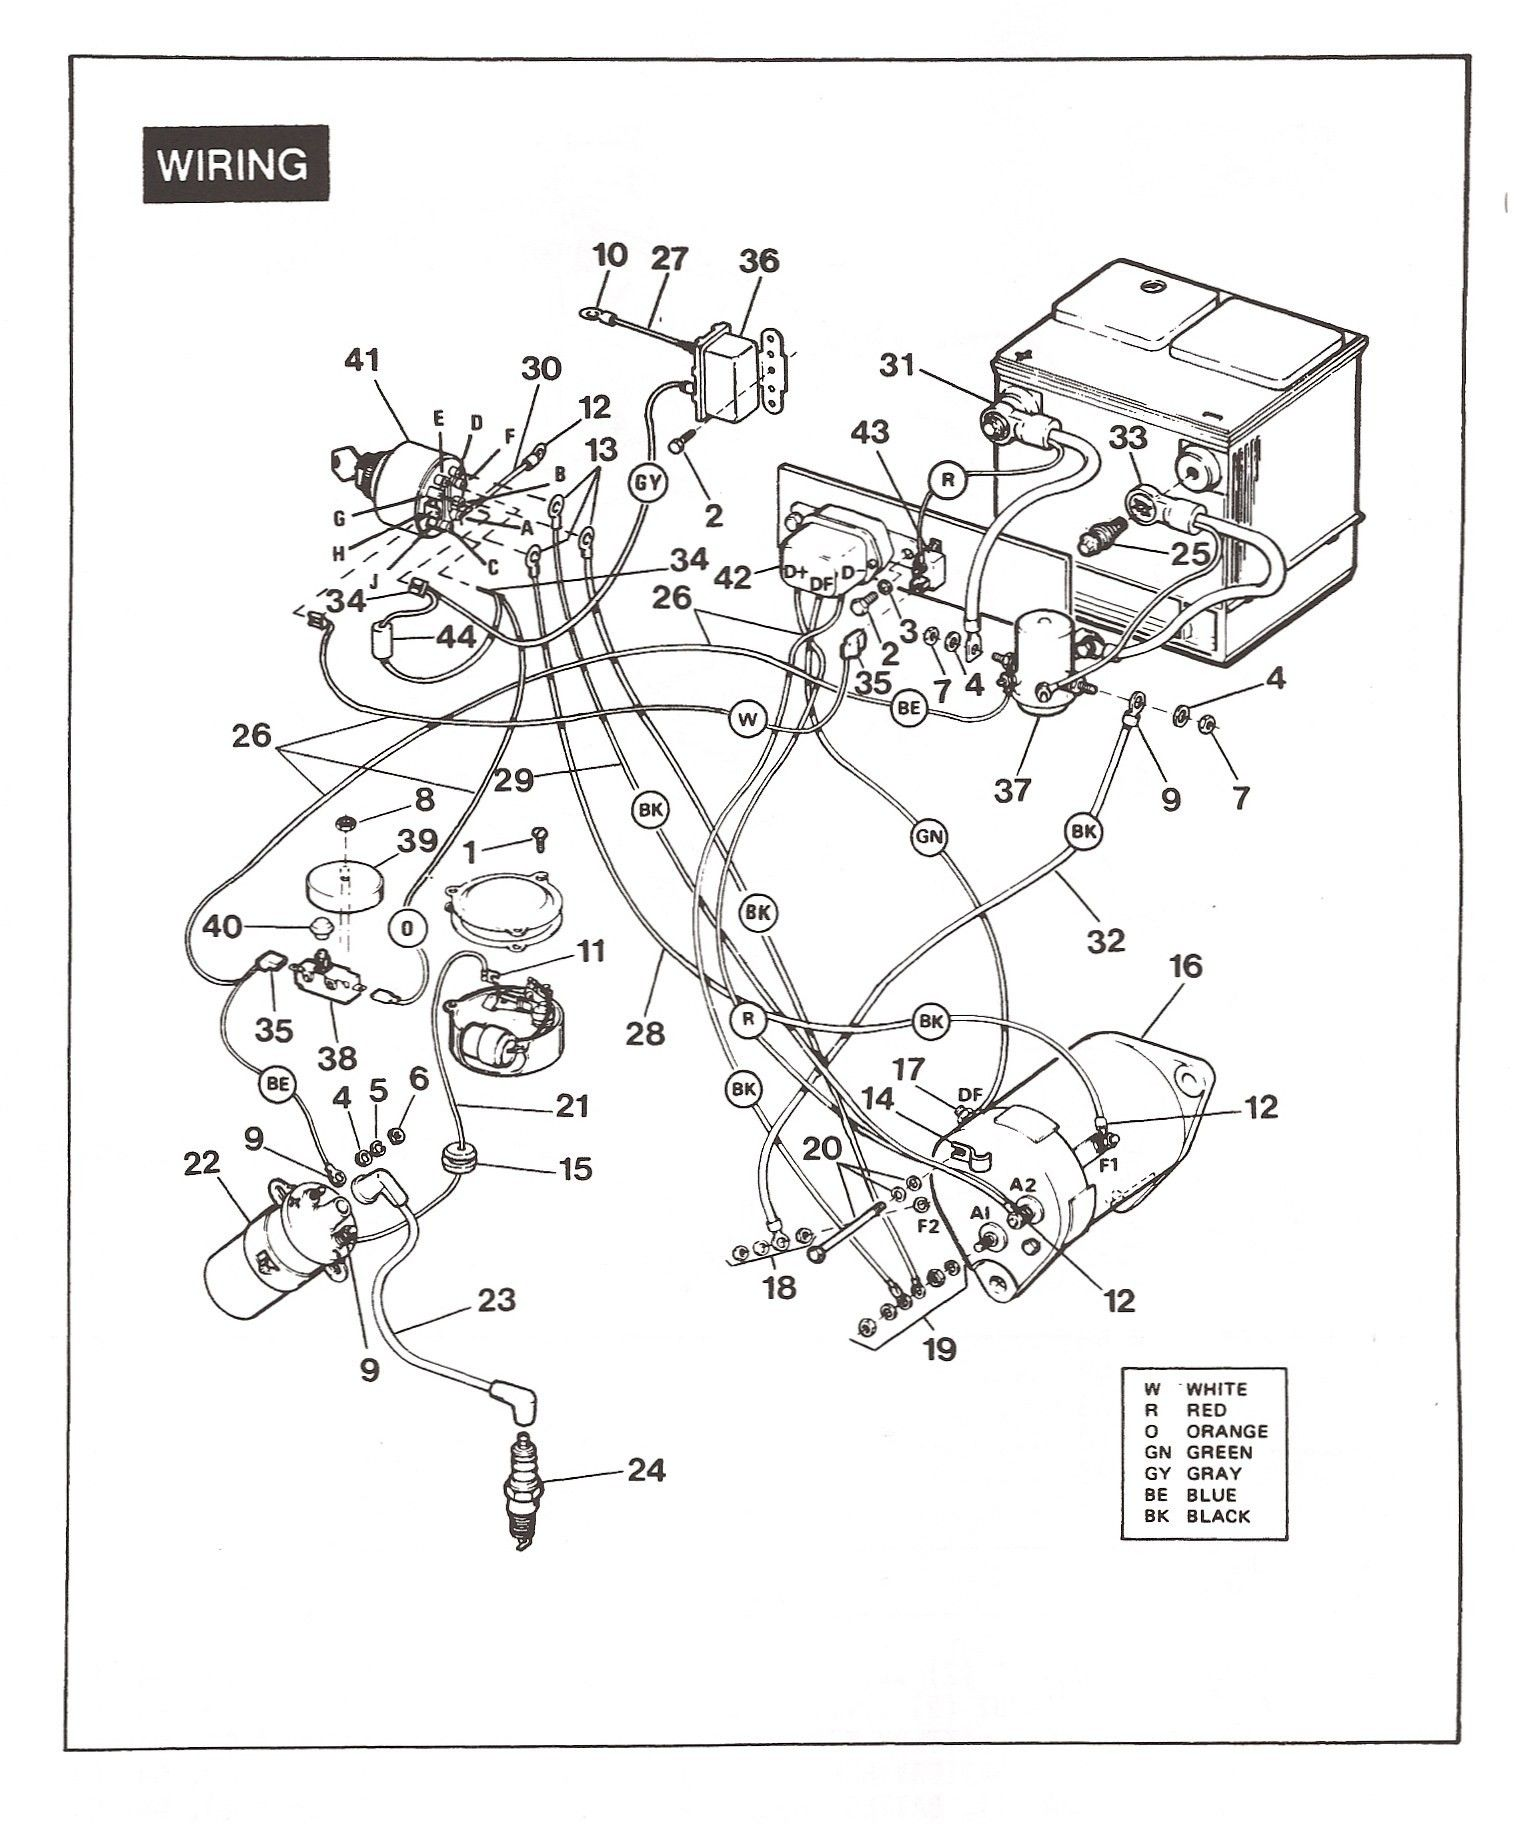 Unique Wiring Diagram 2007 Club Car Precedent (With images